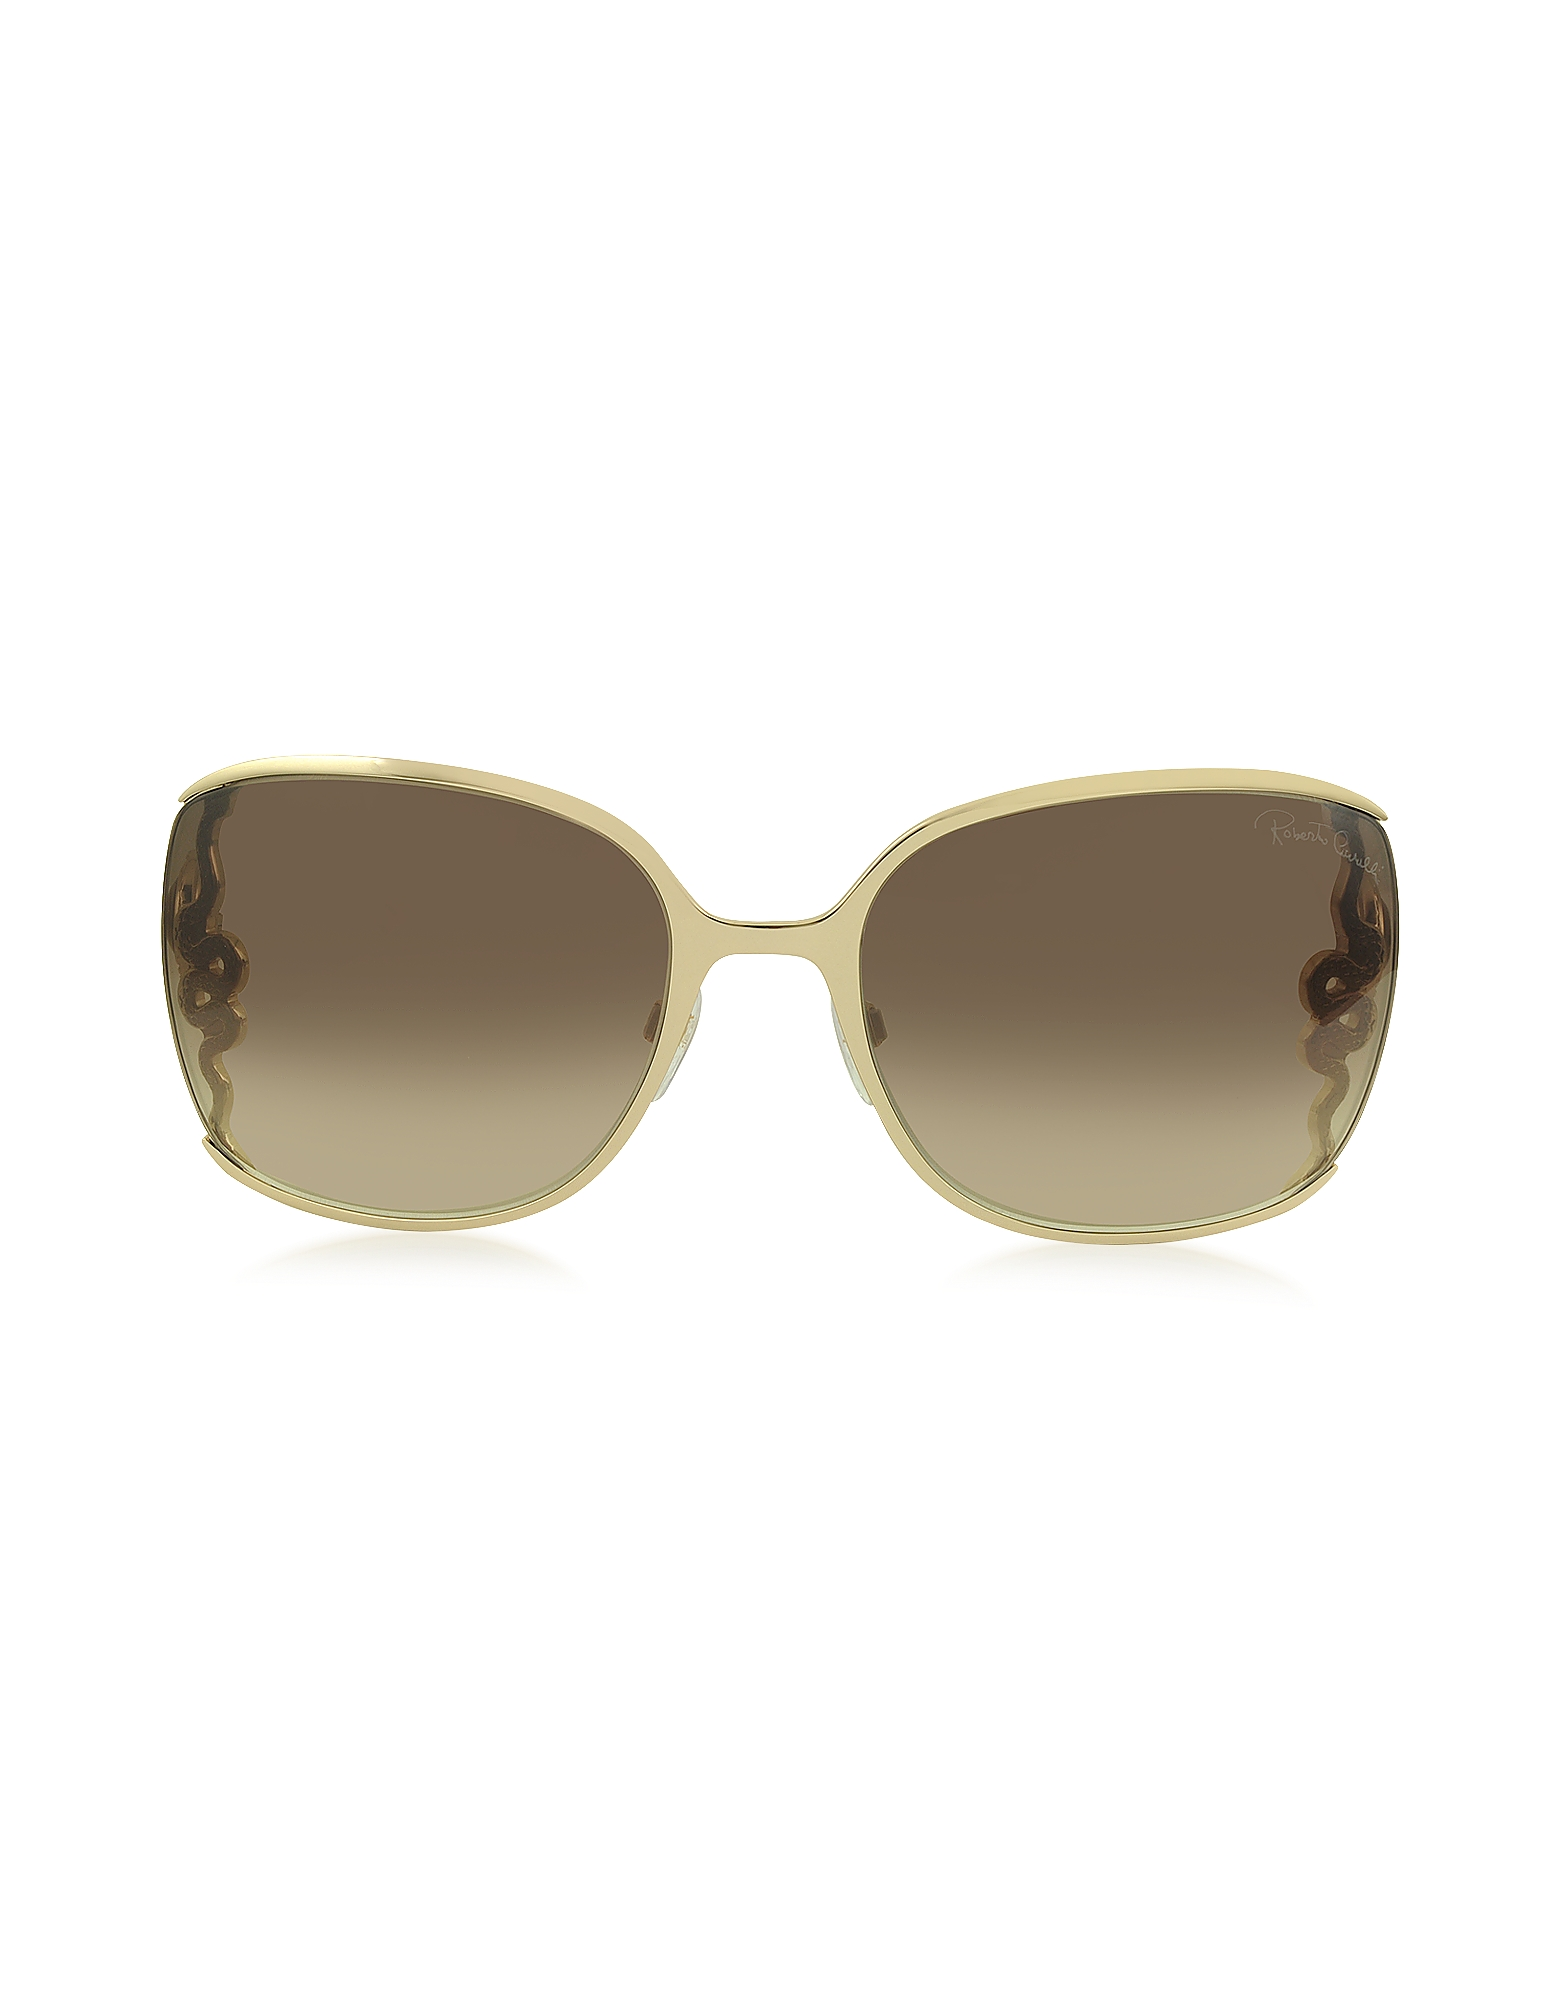 Roberto Cavalli Sunglasses, WASAT 1012 Metal Square Oversized Women's Sunglasses